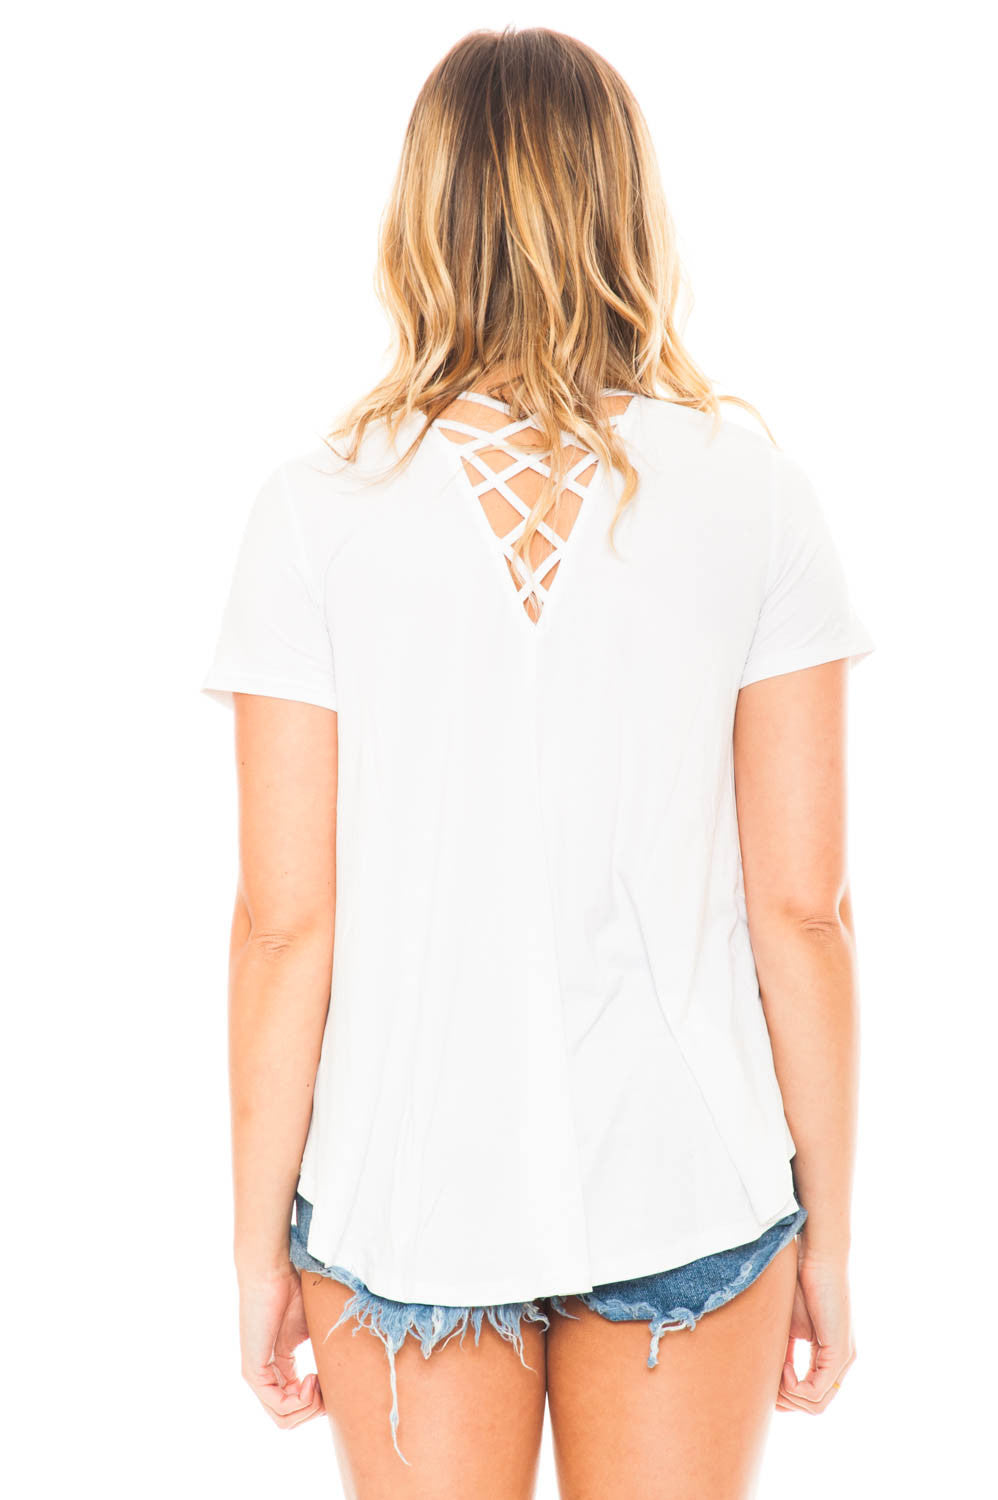 Shirt - Simple V-Neck Tee with Criss Cross Back